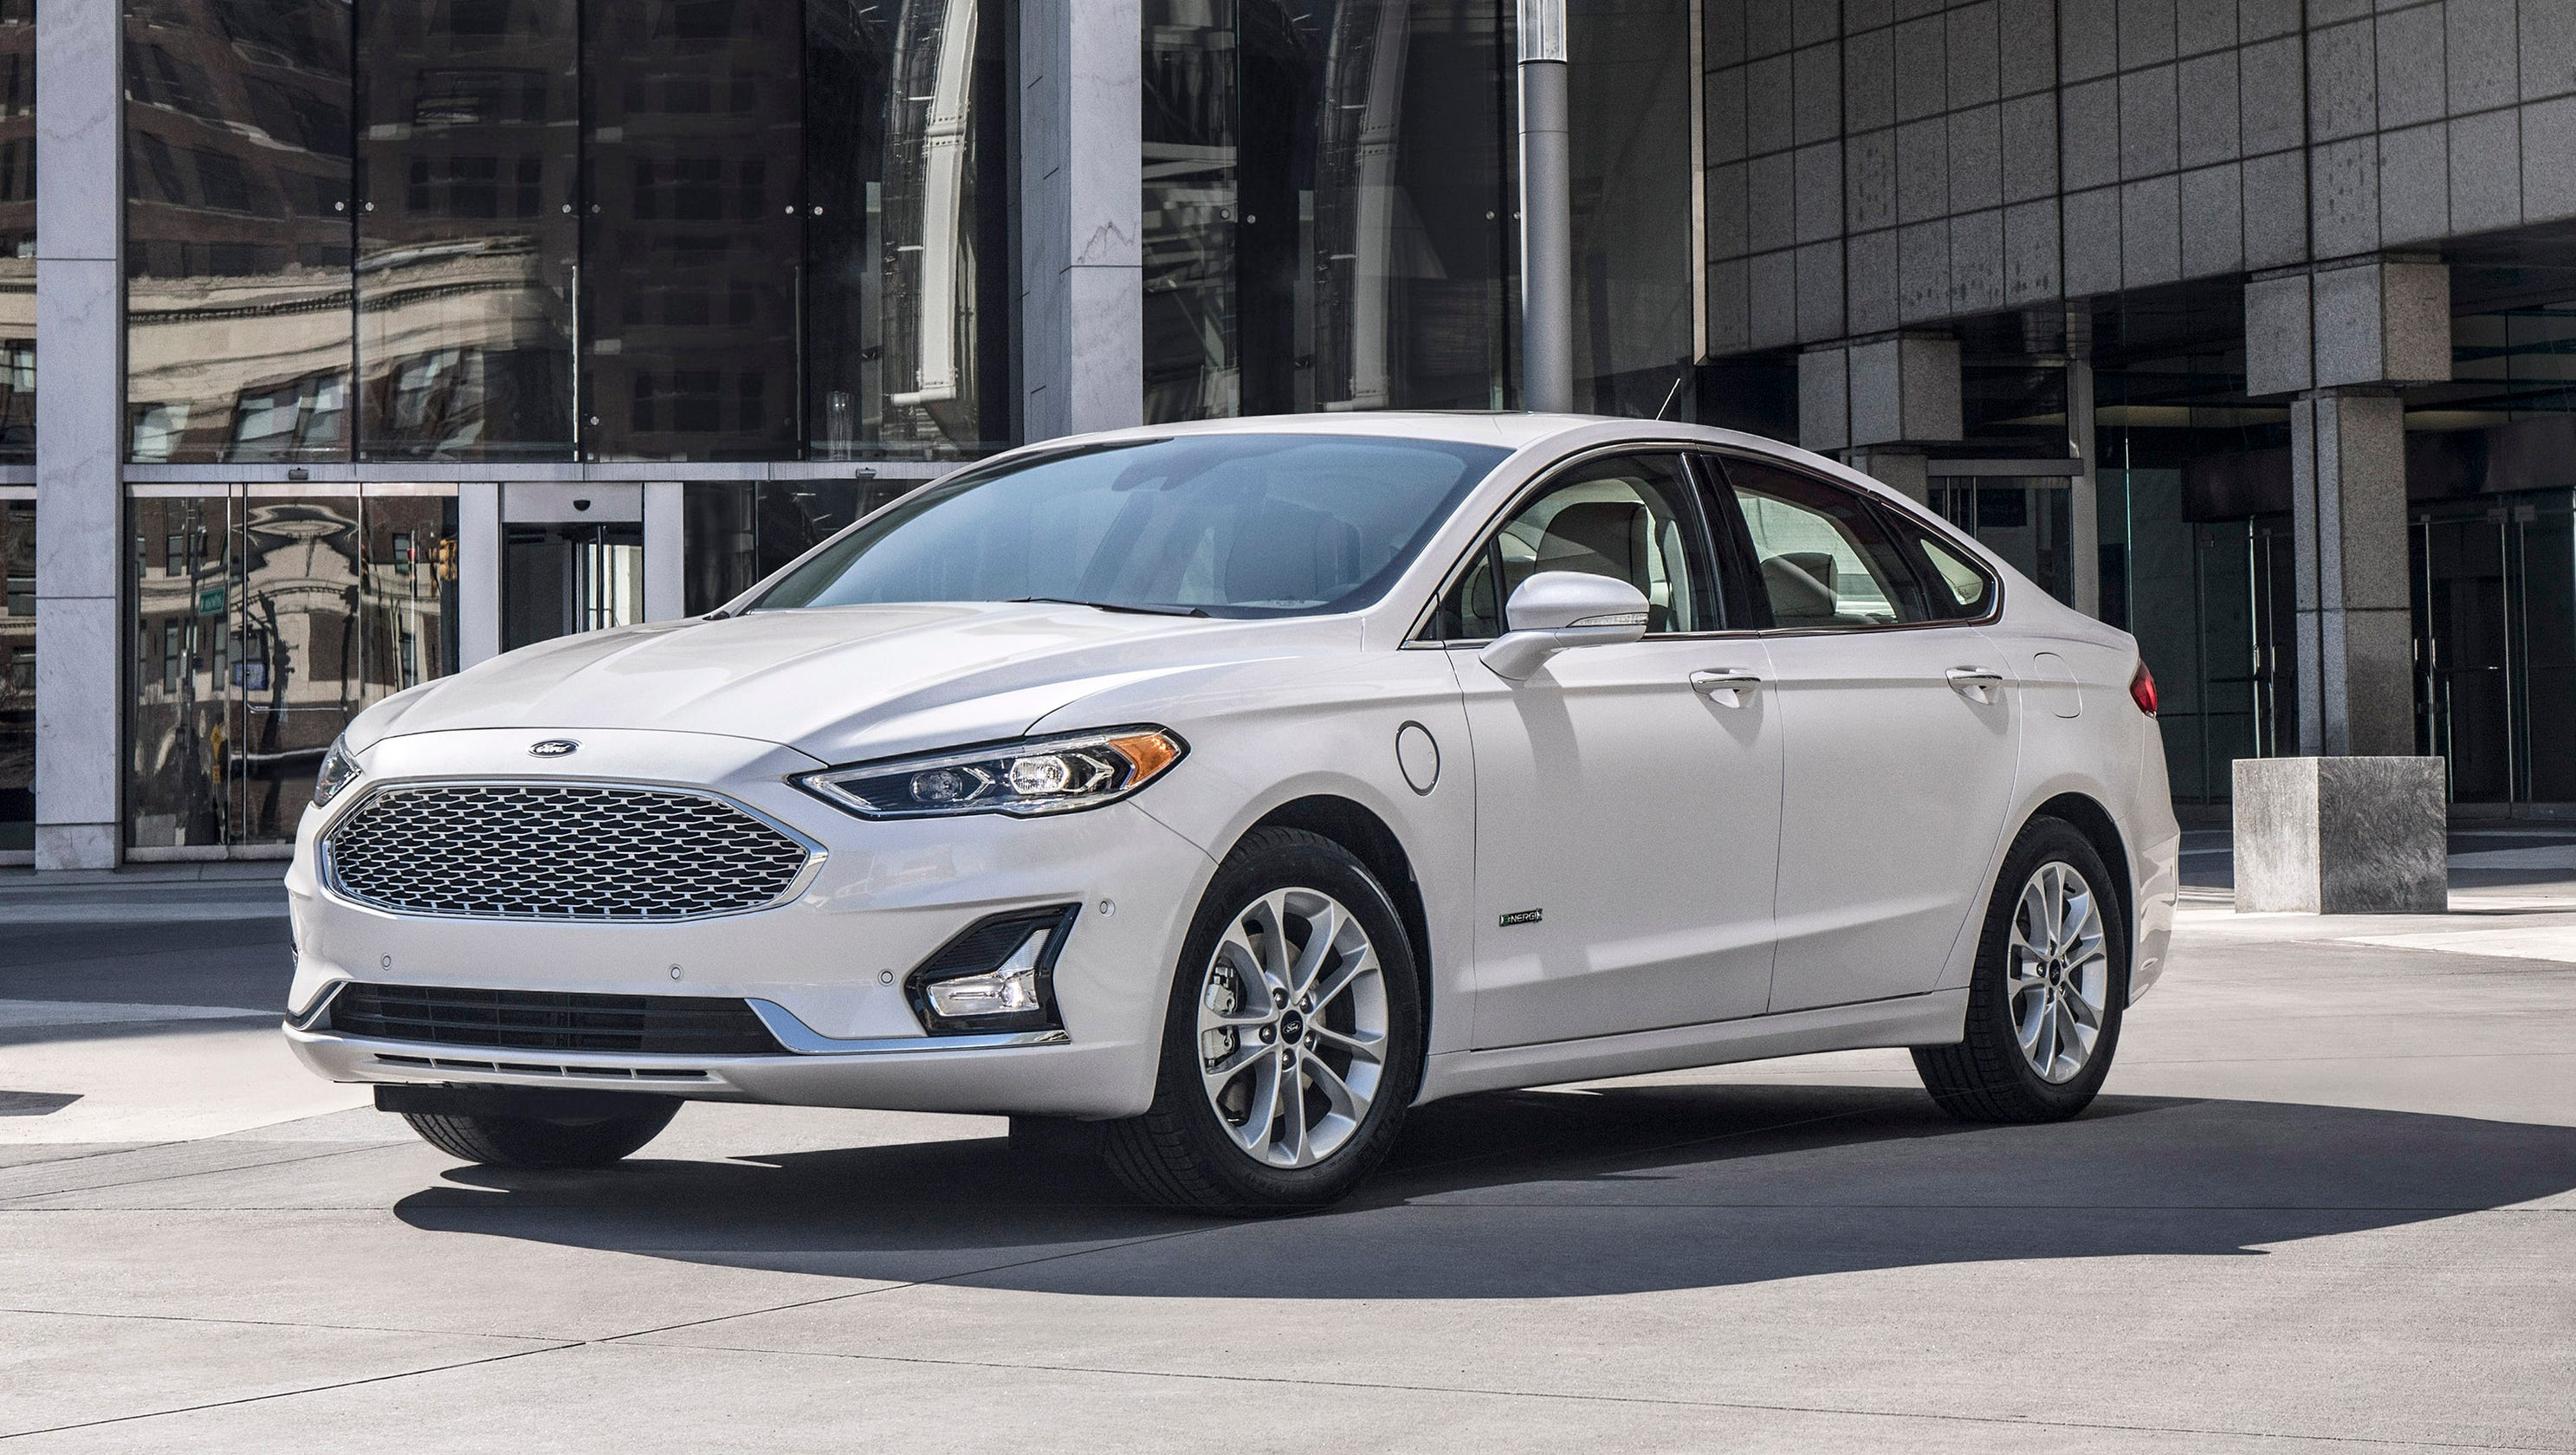 Ford Plans A Surprise For The Next Fusion Hint It Will Not Be Car